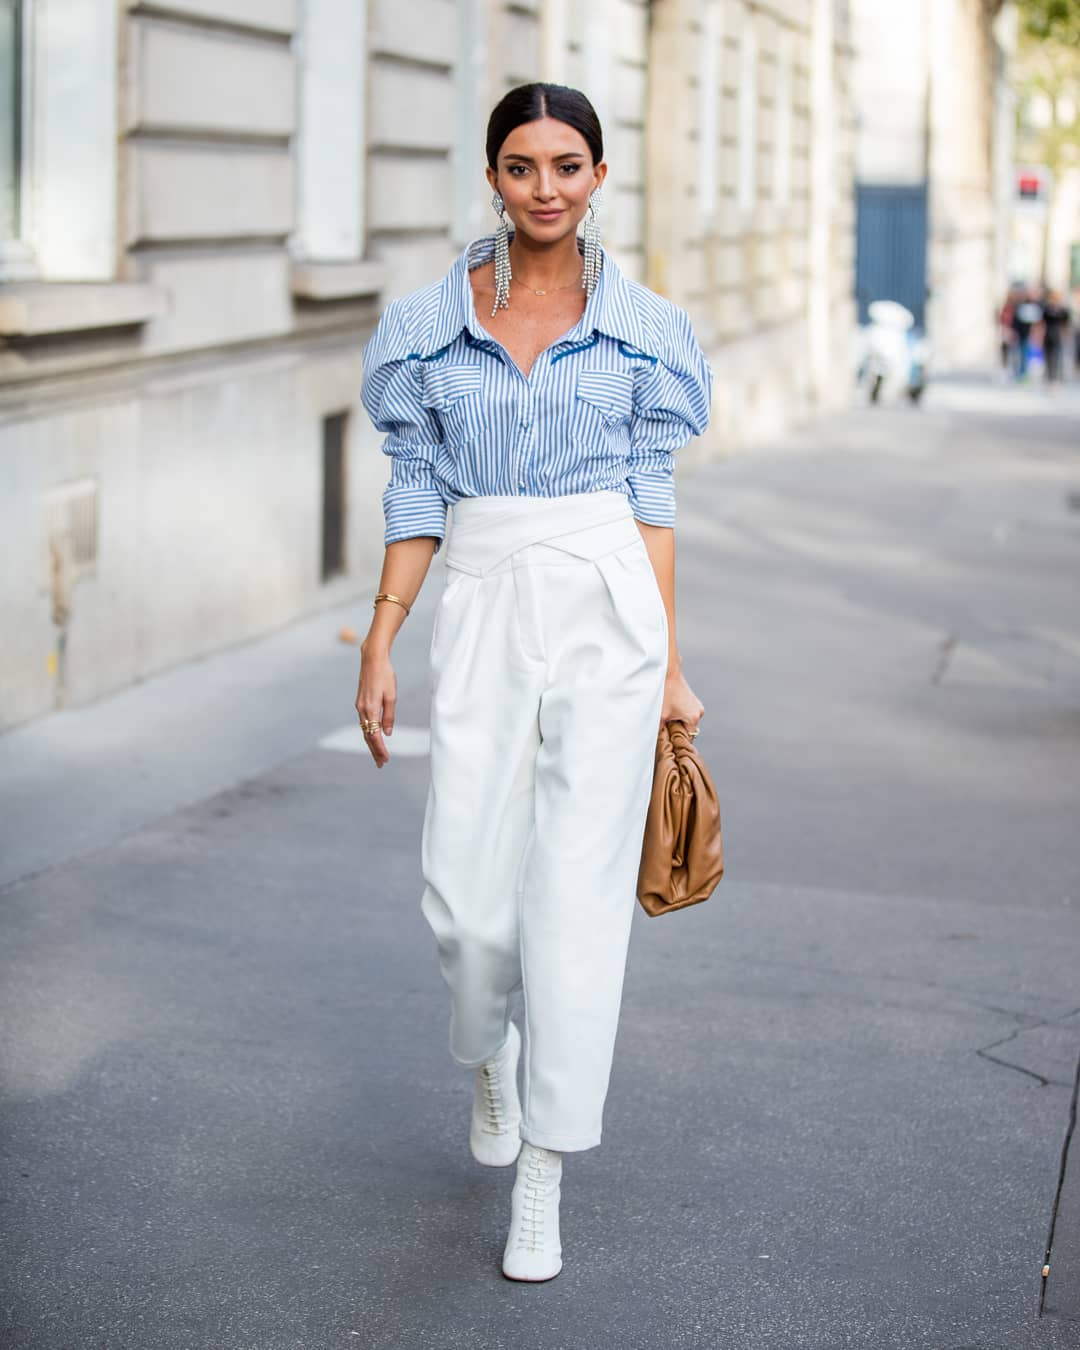 21 Pairs of White Pants That Aren't Denim